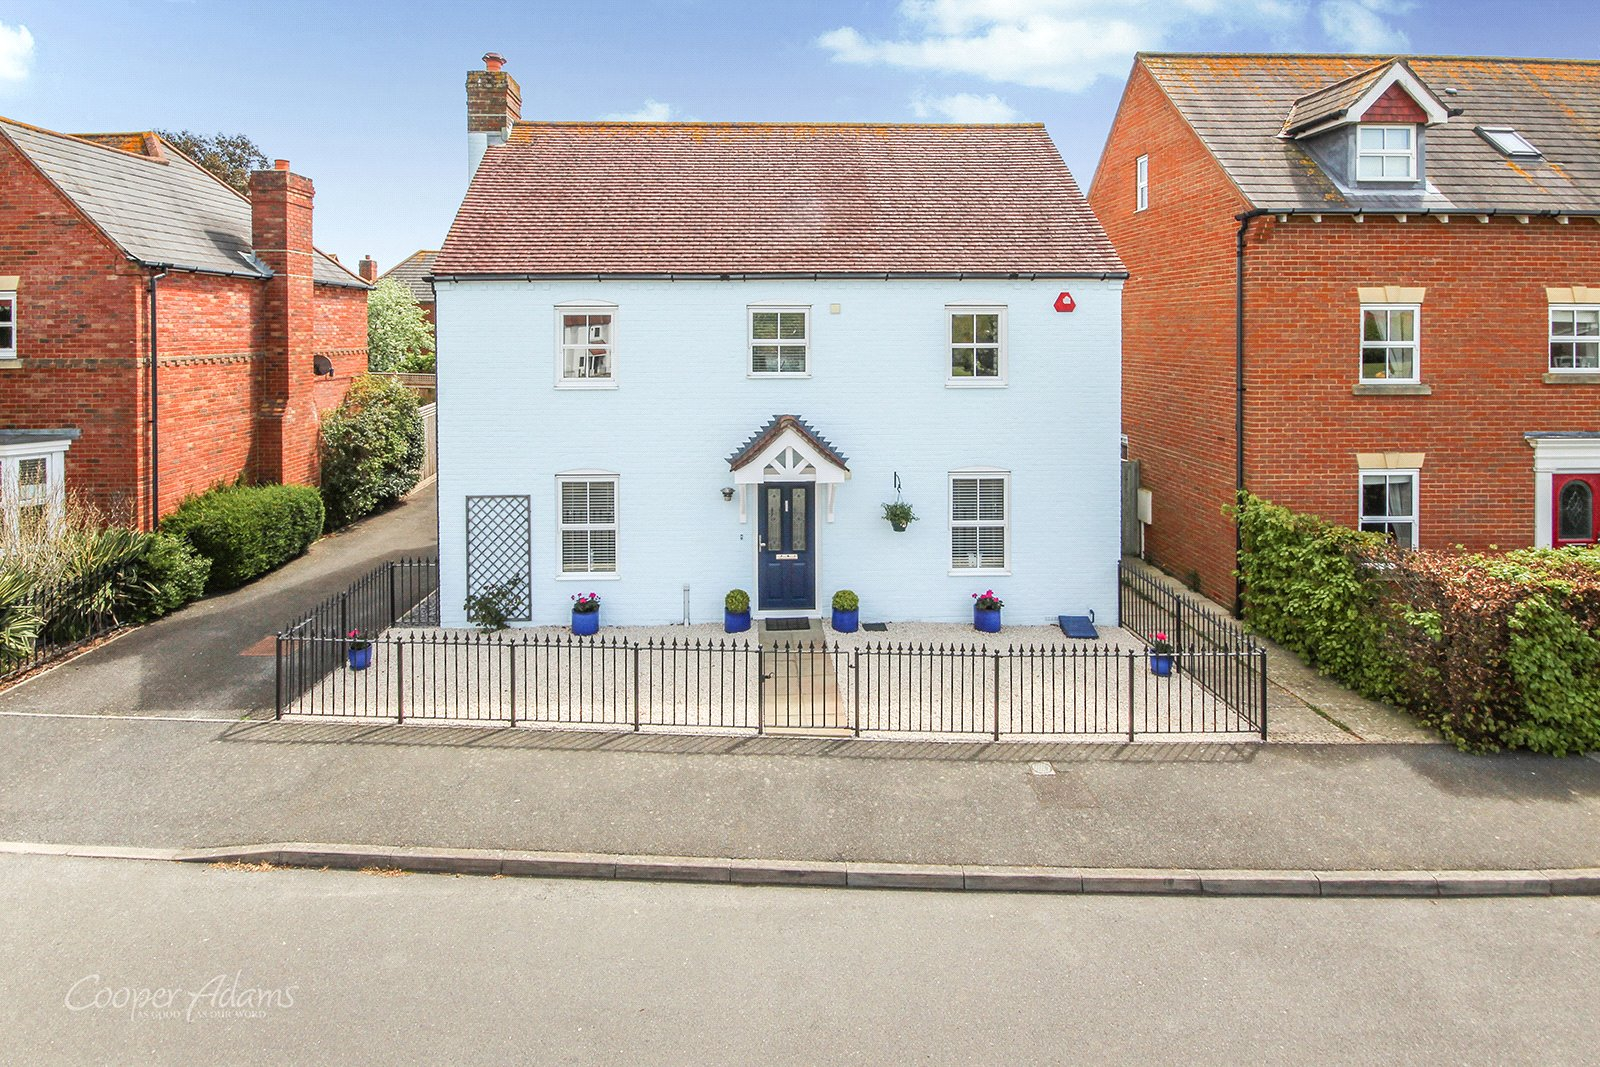 4 bed house for sale in William Olders Road, Angmering, BN16